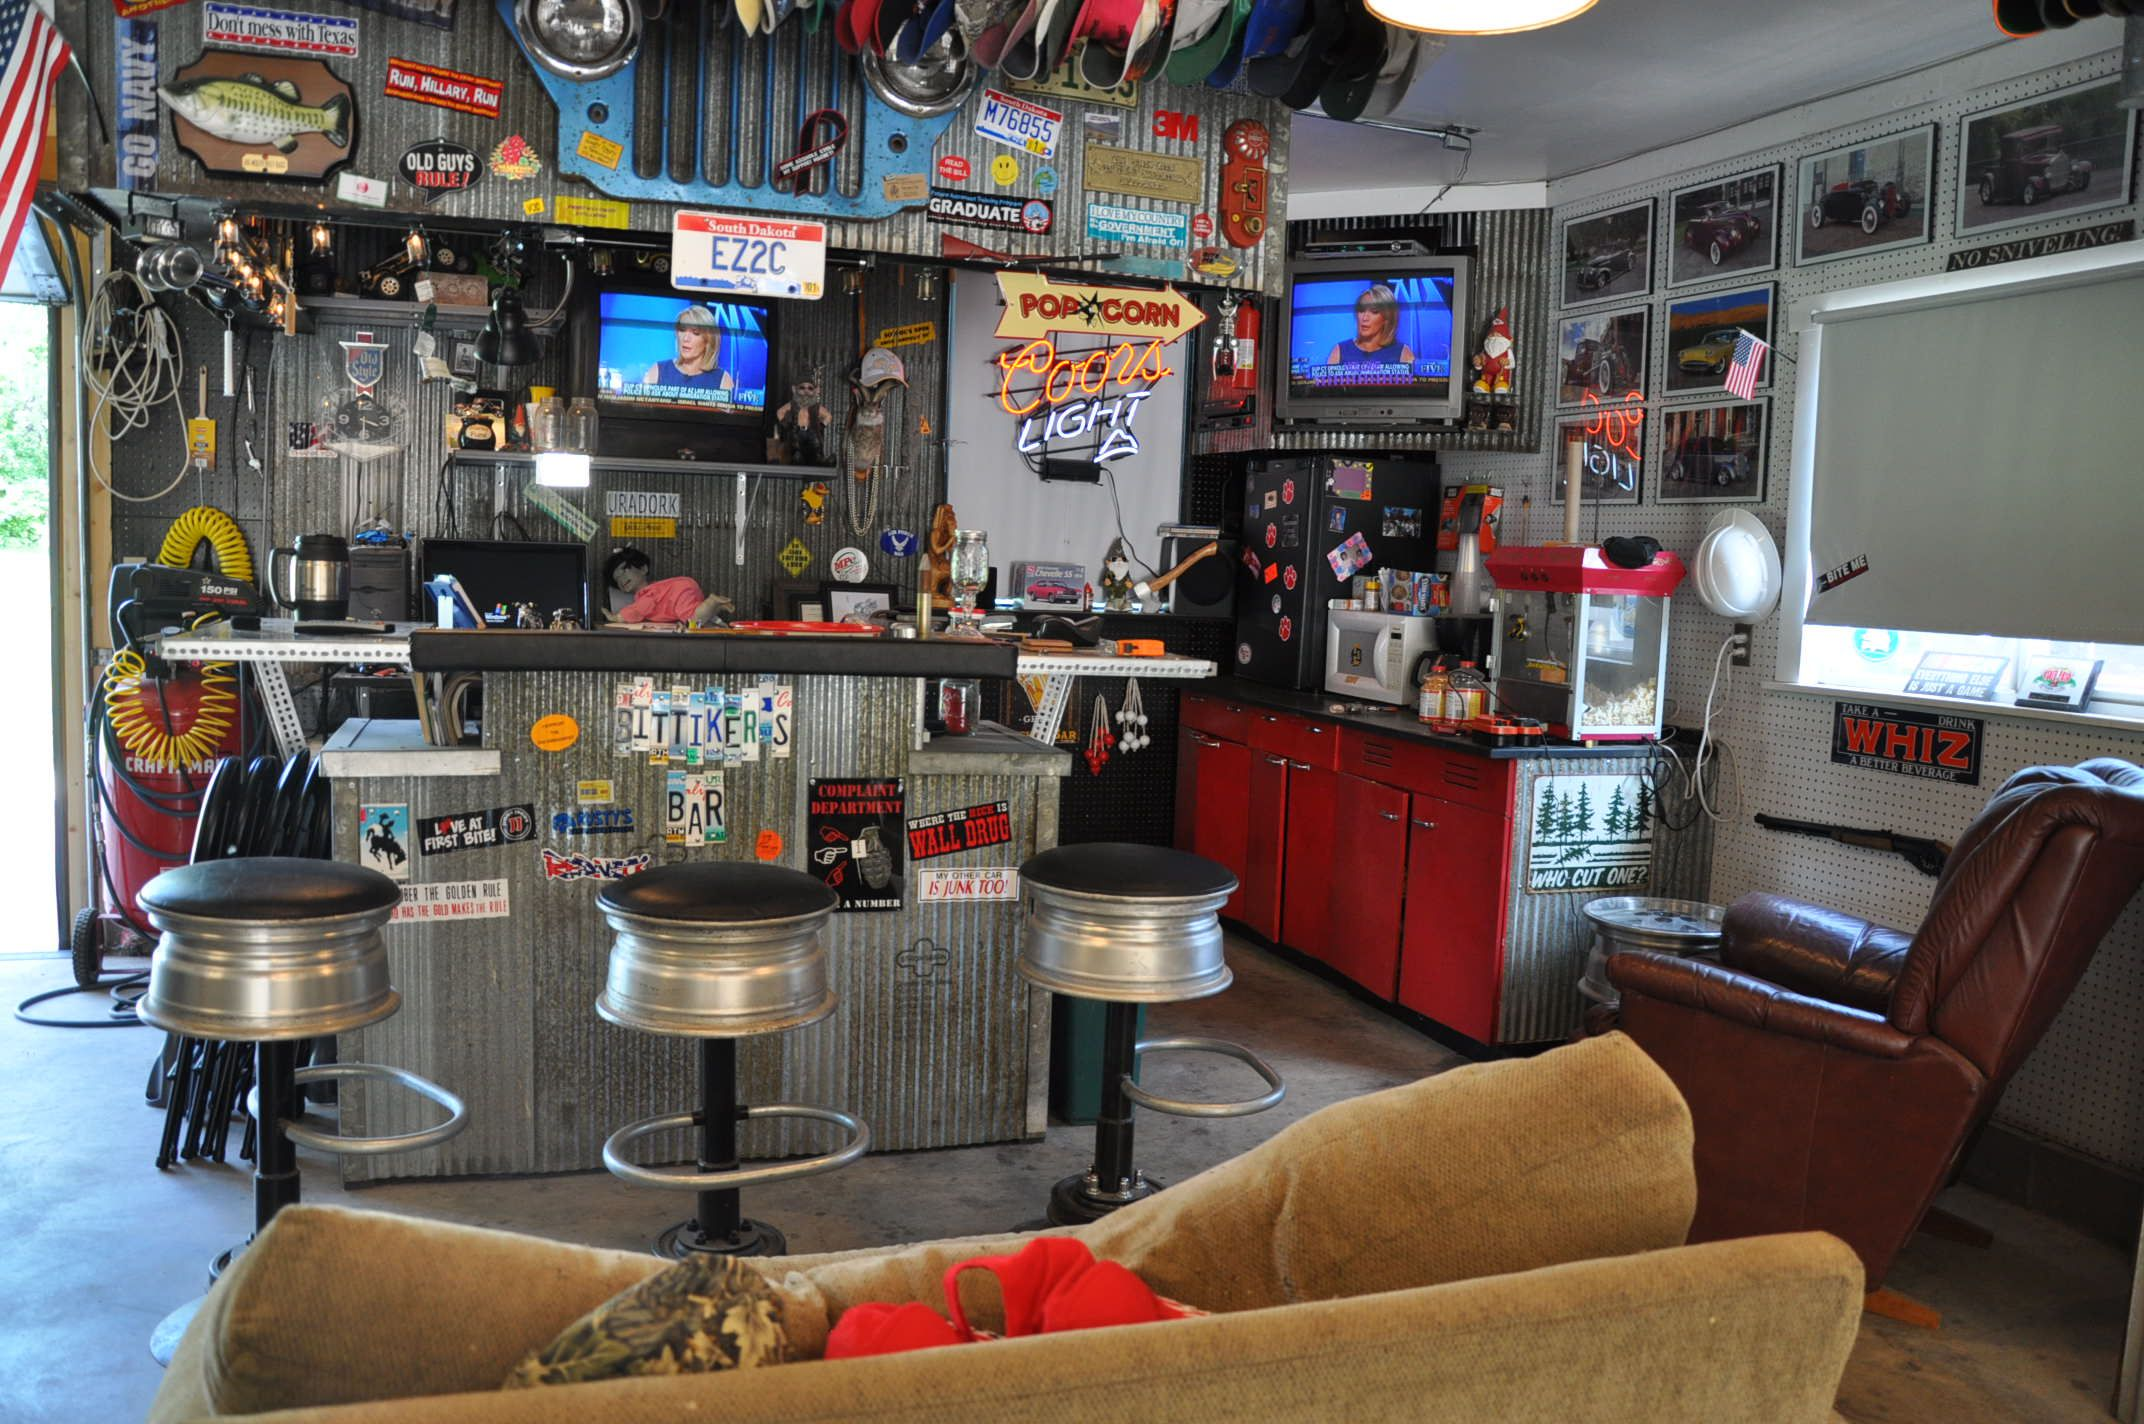 Cool Man Caves : Garages / man caves : Pinterest : Men cave, Small garage and Man caves